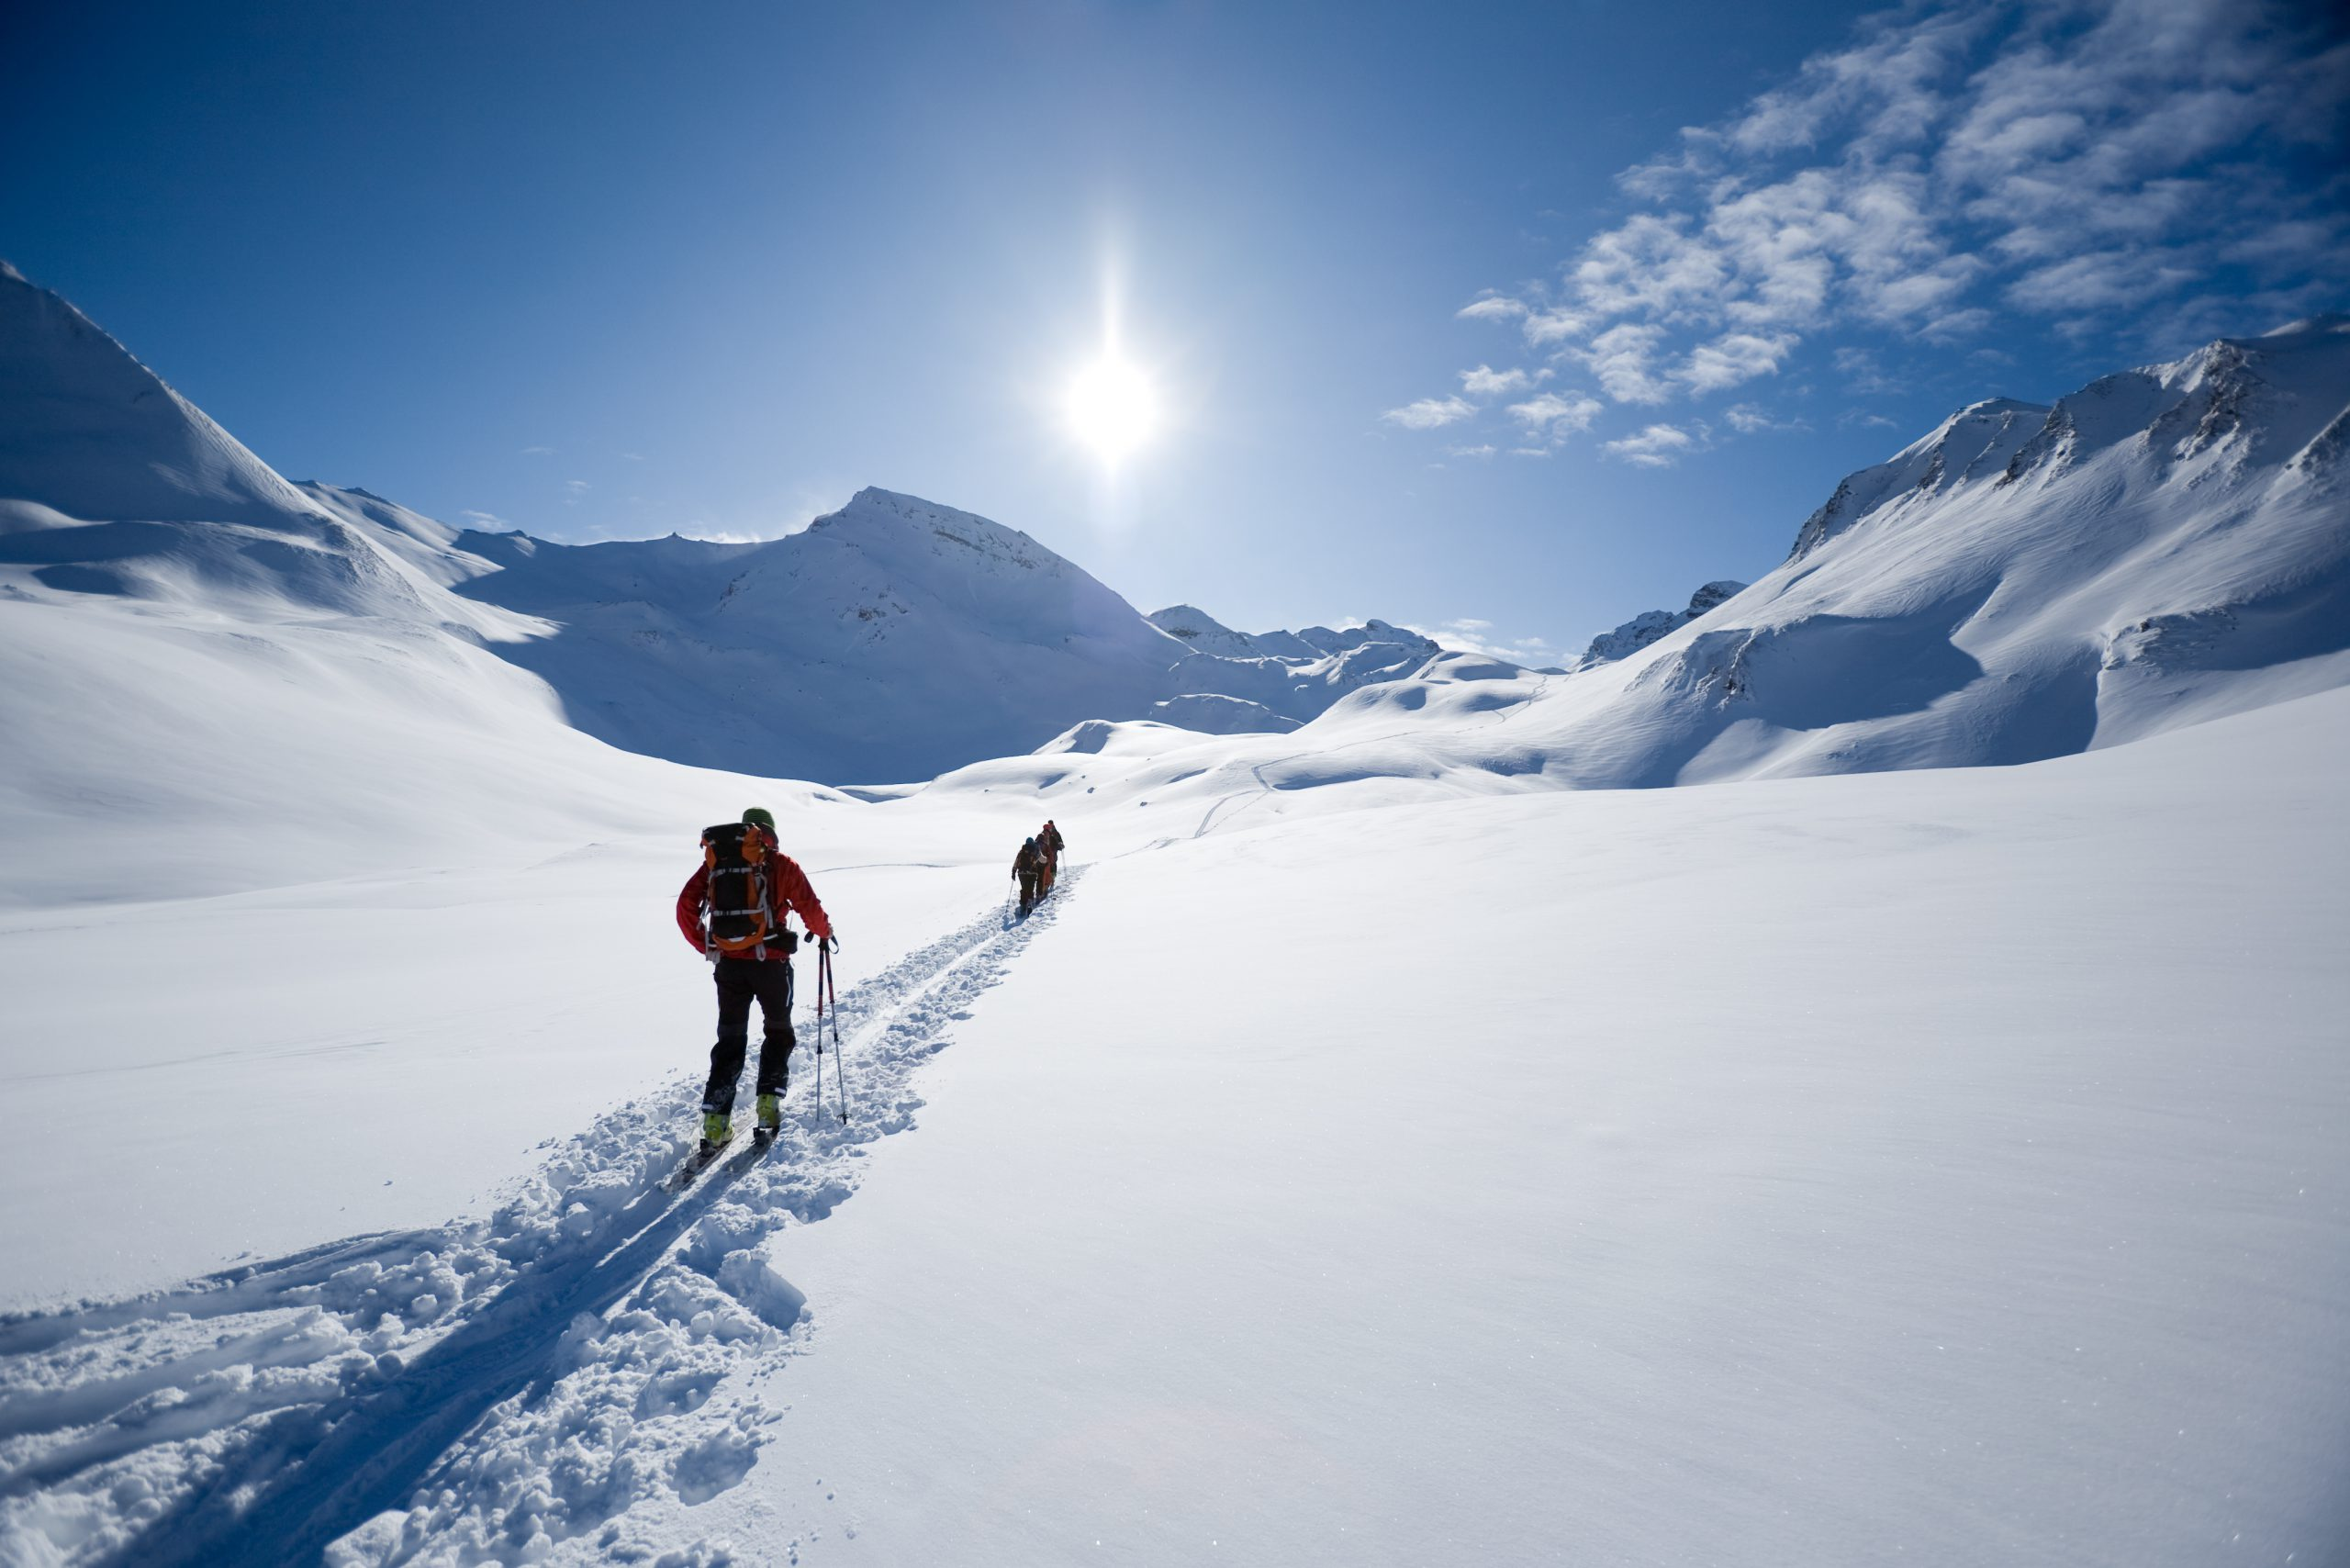 ski touring, ski mountaineering people on its way in the Austrian/Swiss Alps